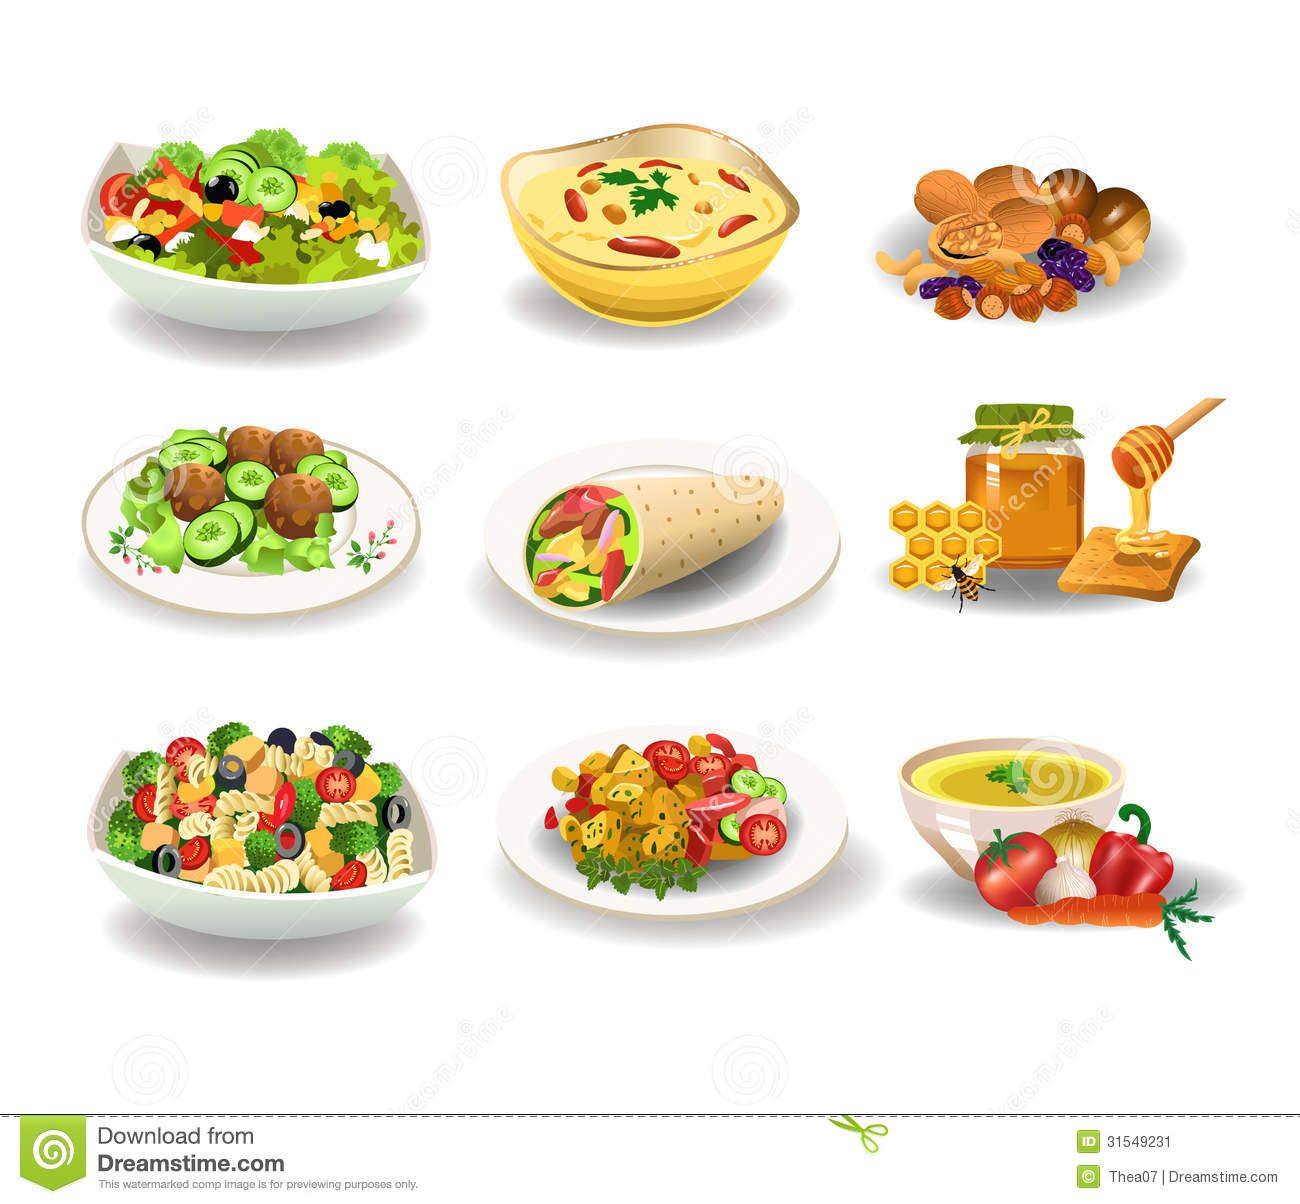 Healthy Food Download From Over 28 Million High Quality